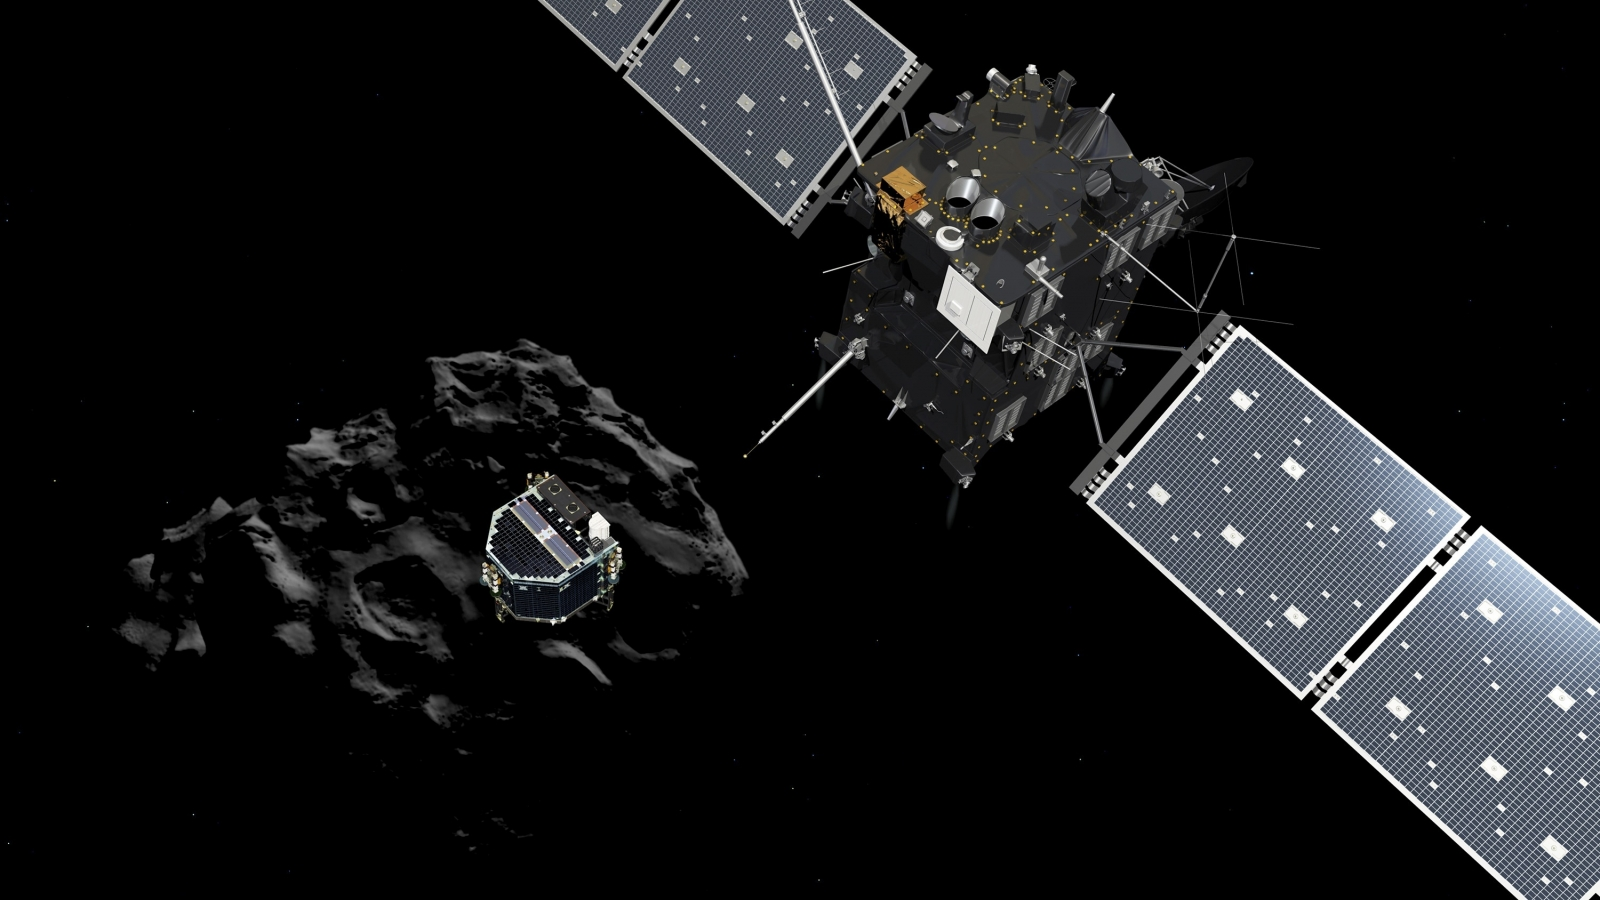 ESA's Rosetta Spacecraft Comet Landing: Probe 'Is on the Surface and Talking'